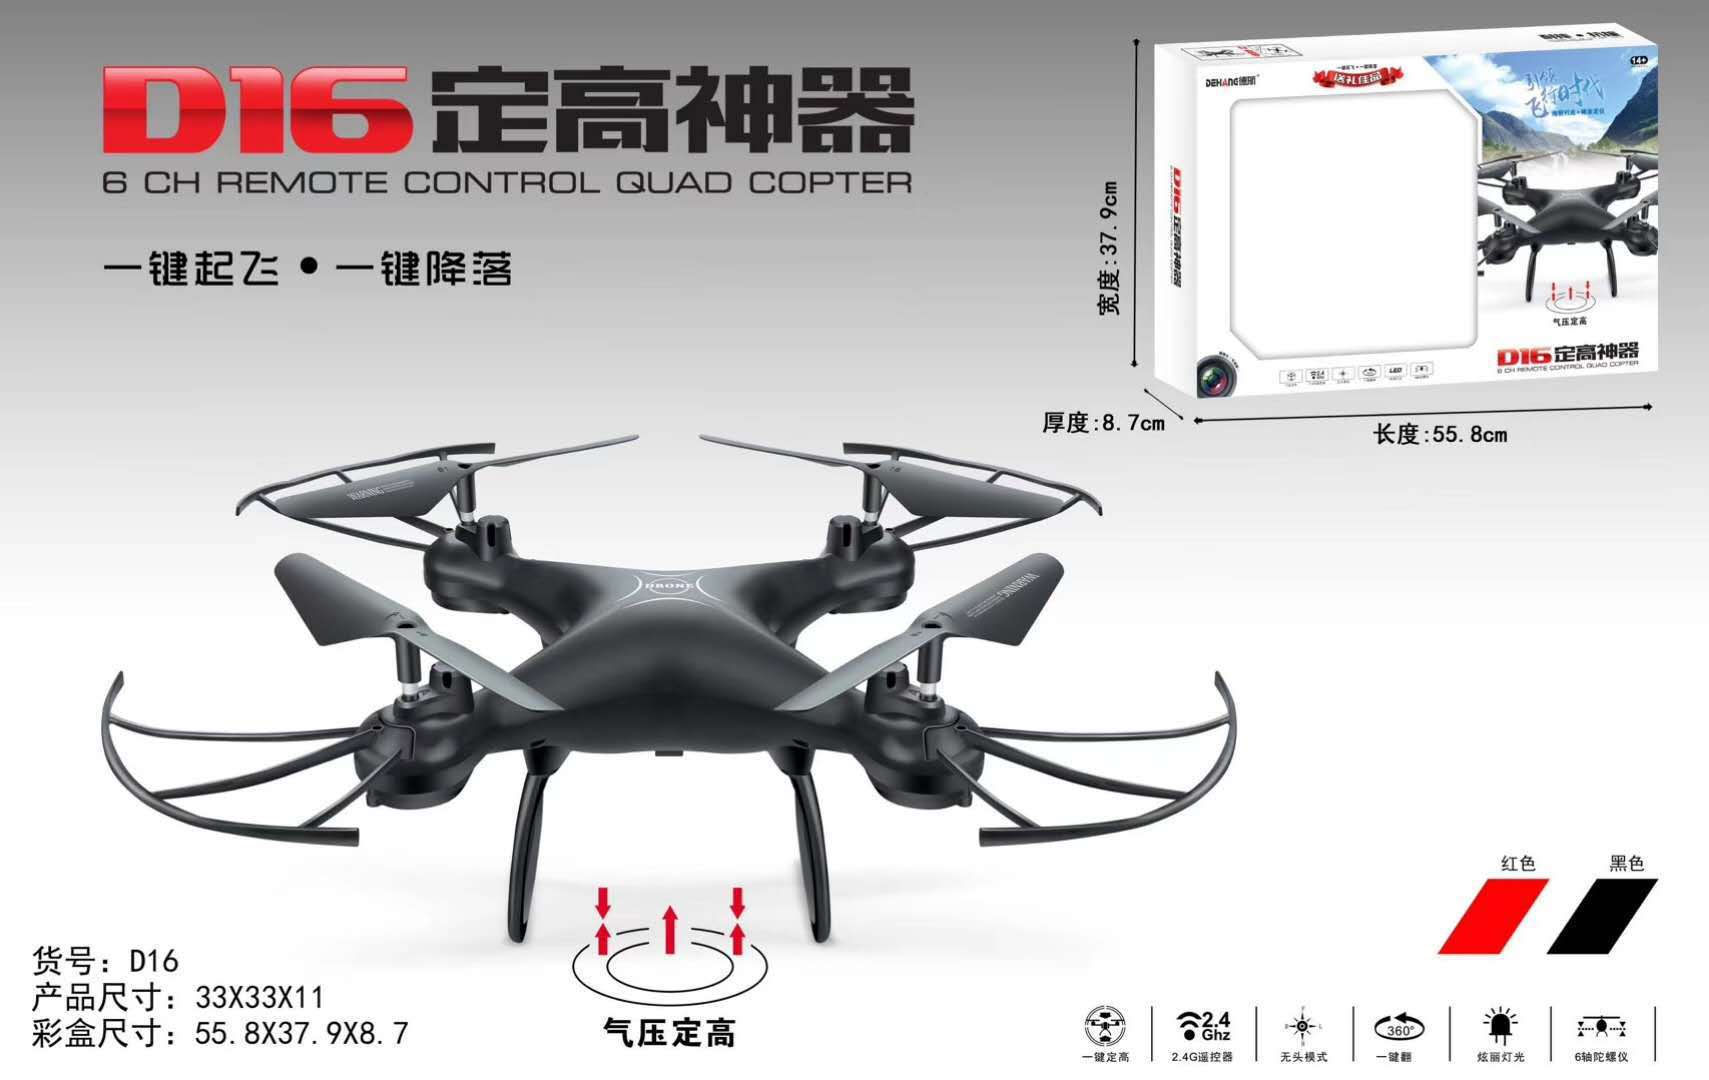 Unmanned Aerial Vehicle Quadcopter Pressure Set High One-Button Take-off Smart Remote Control Airplane